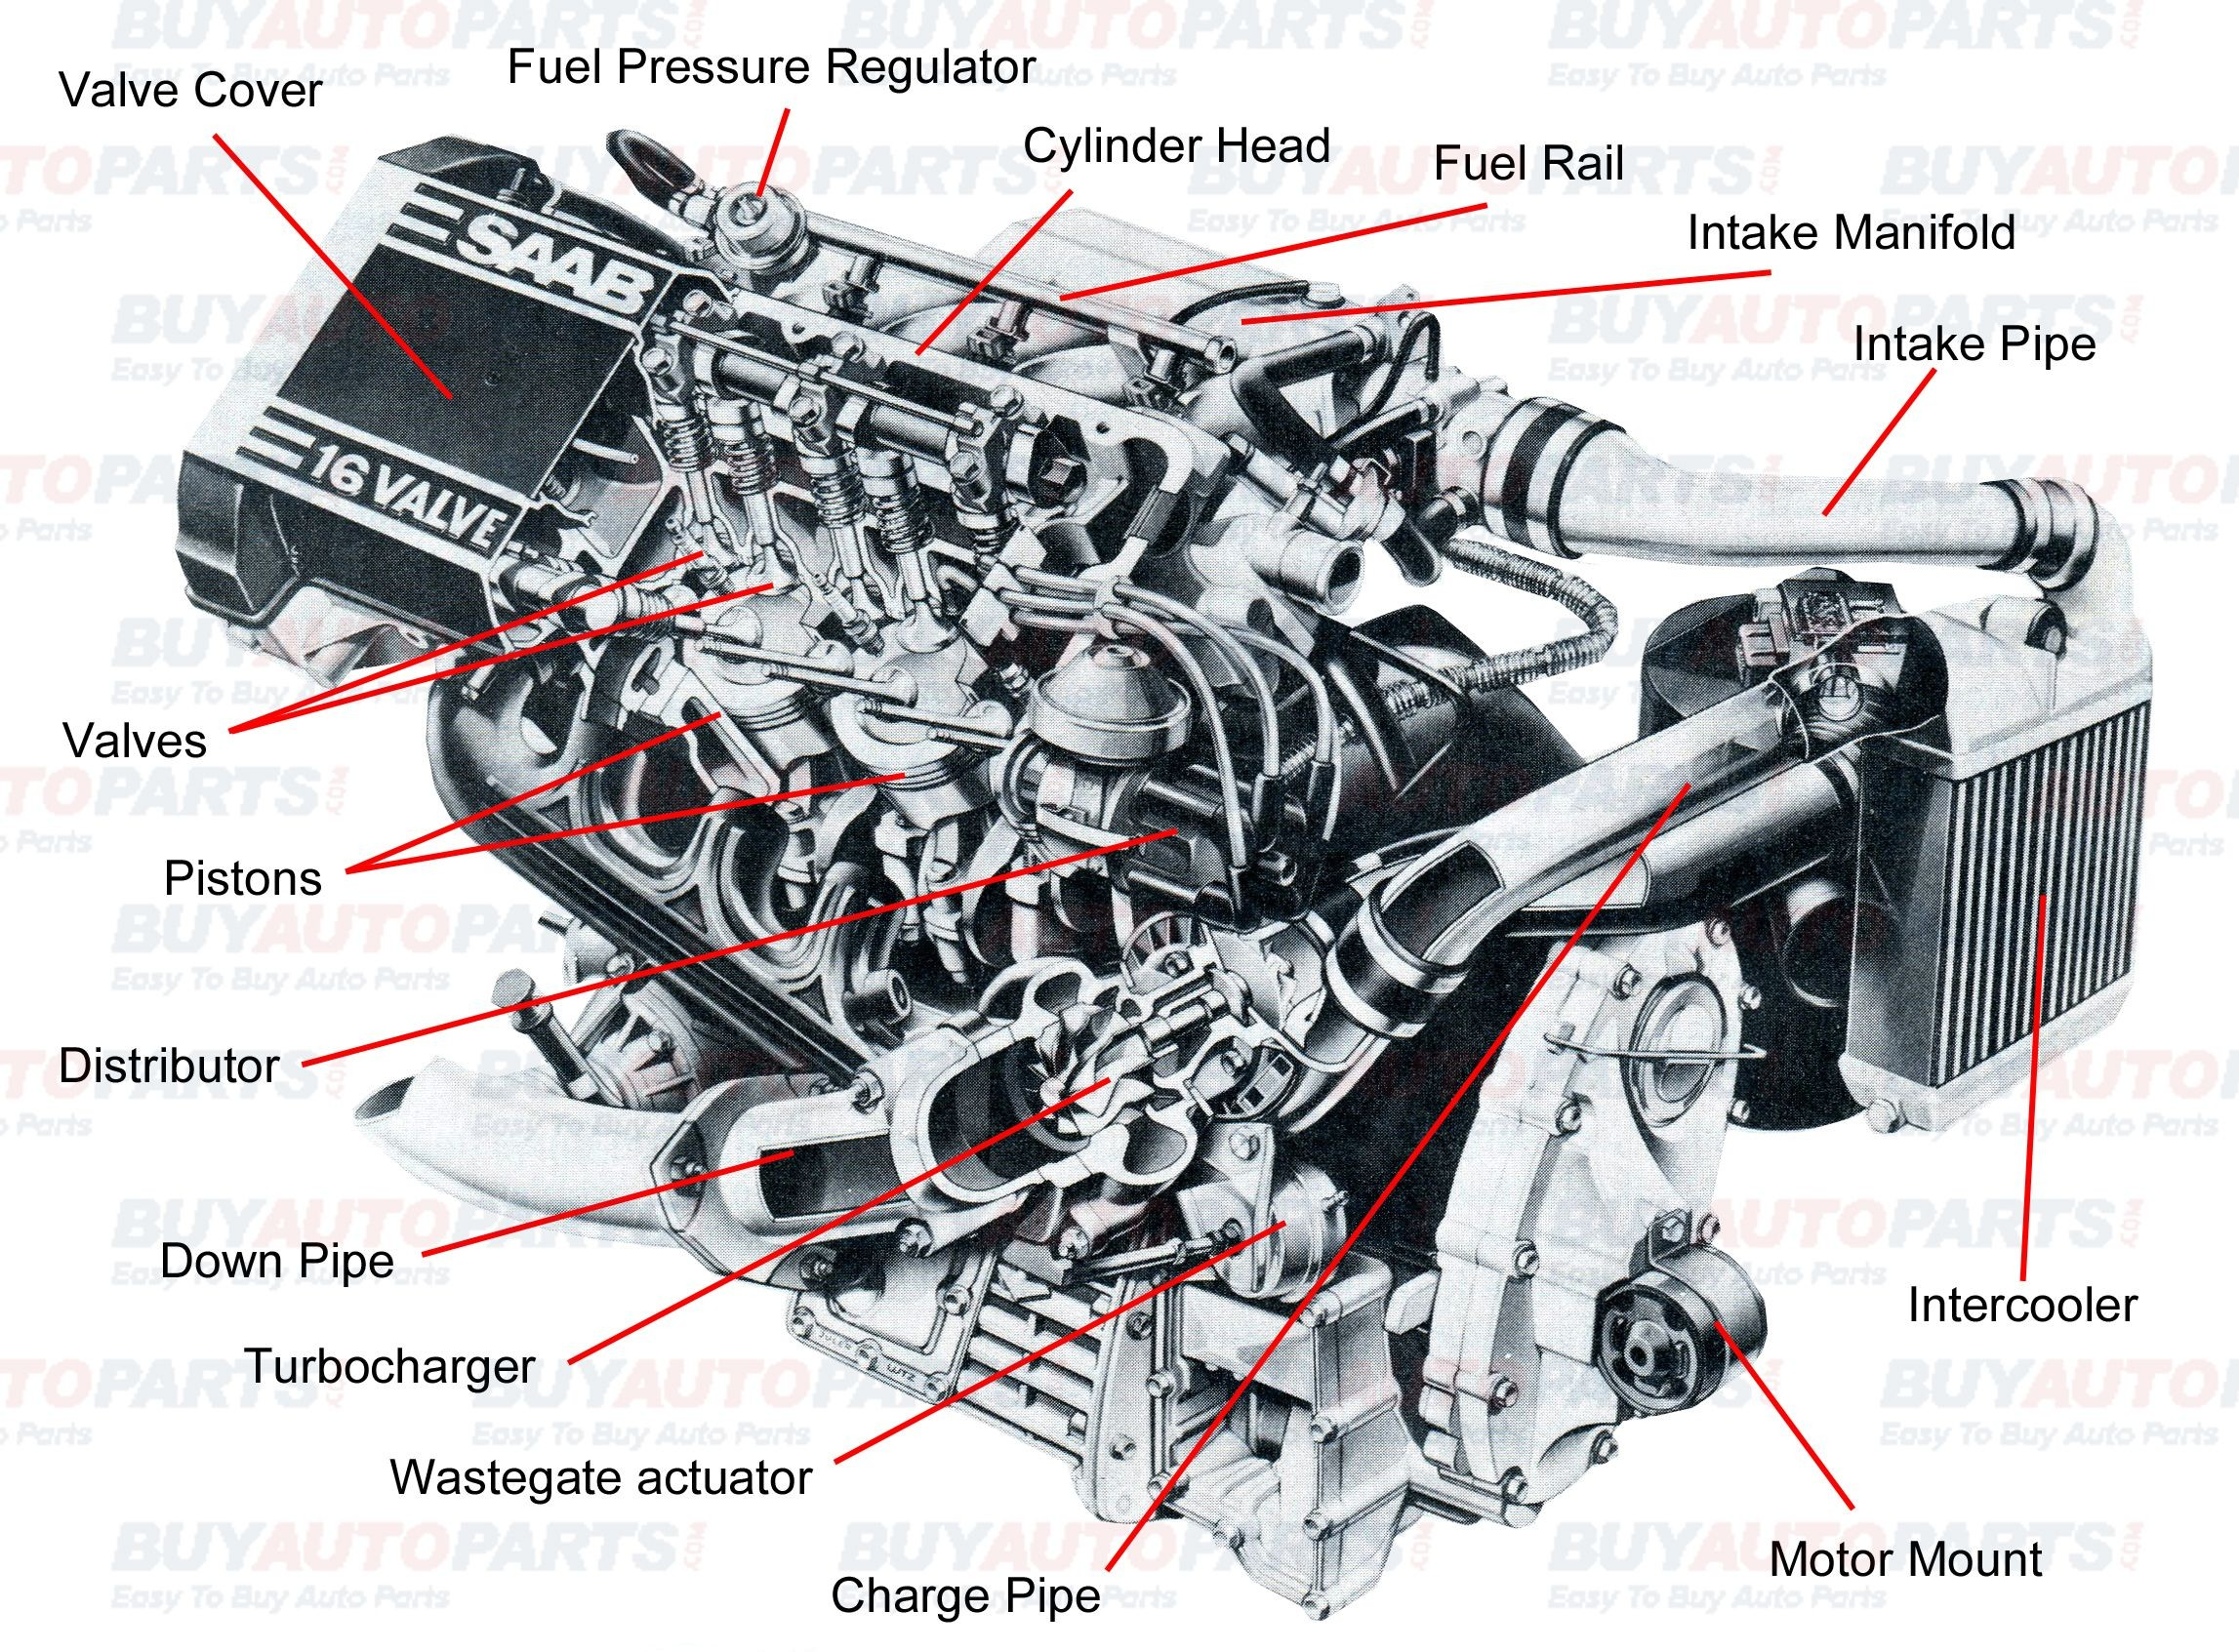 Car Fuel System Diagram All Internal Bustion Engines Have the Same Basic Ponents the Of Car Fuel System Diagram